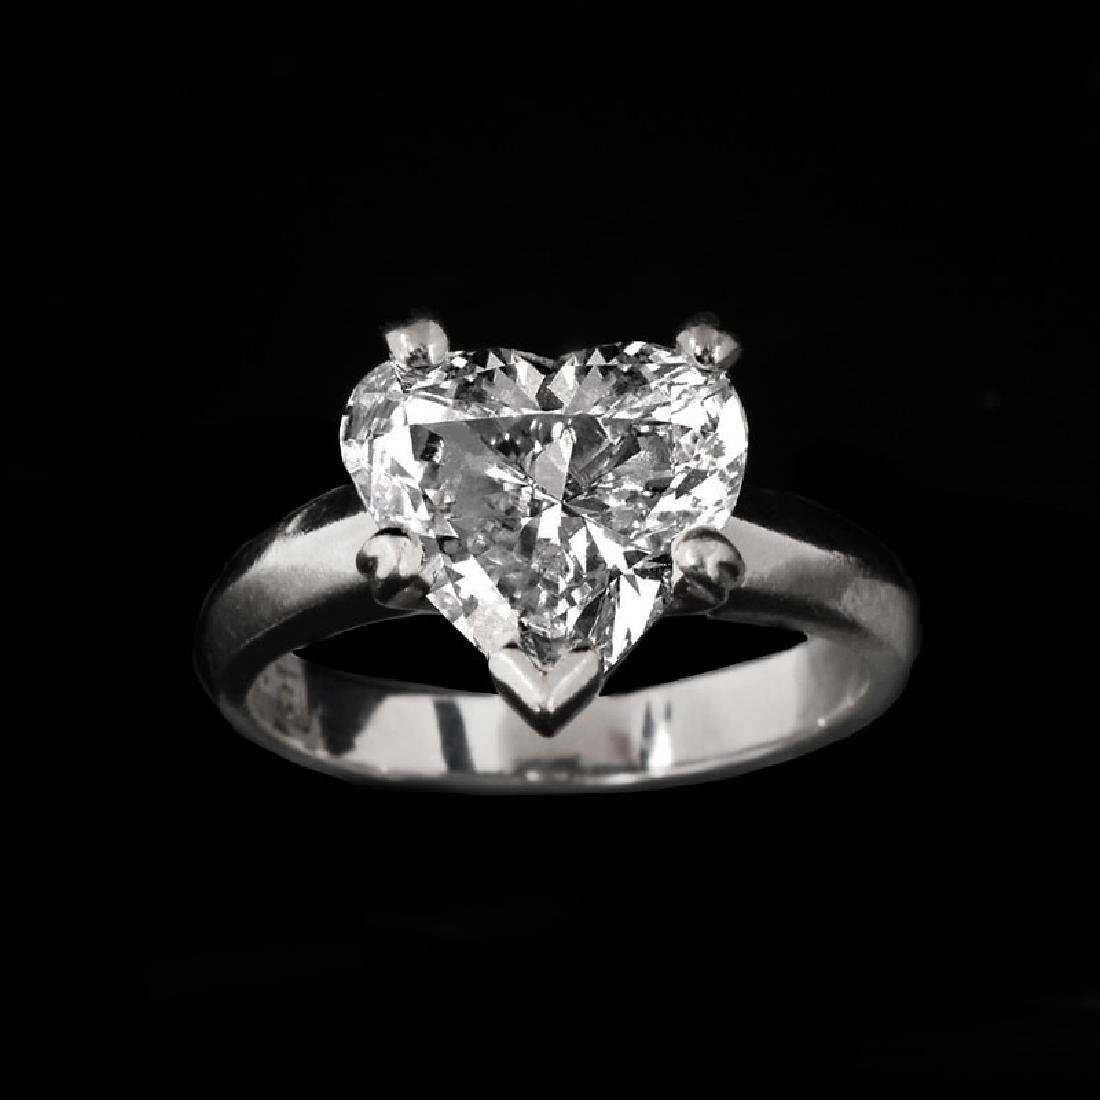 GIA Certified 2.53 Carat Heart Shape Diamond and